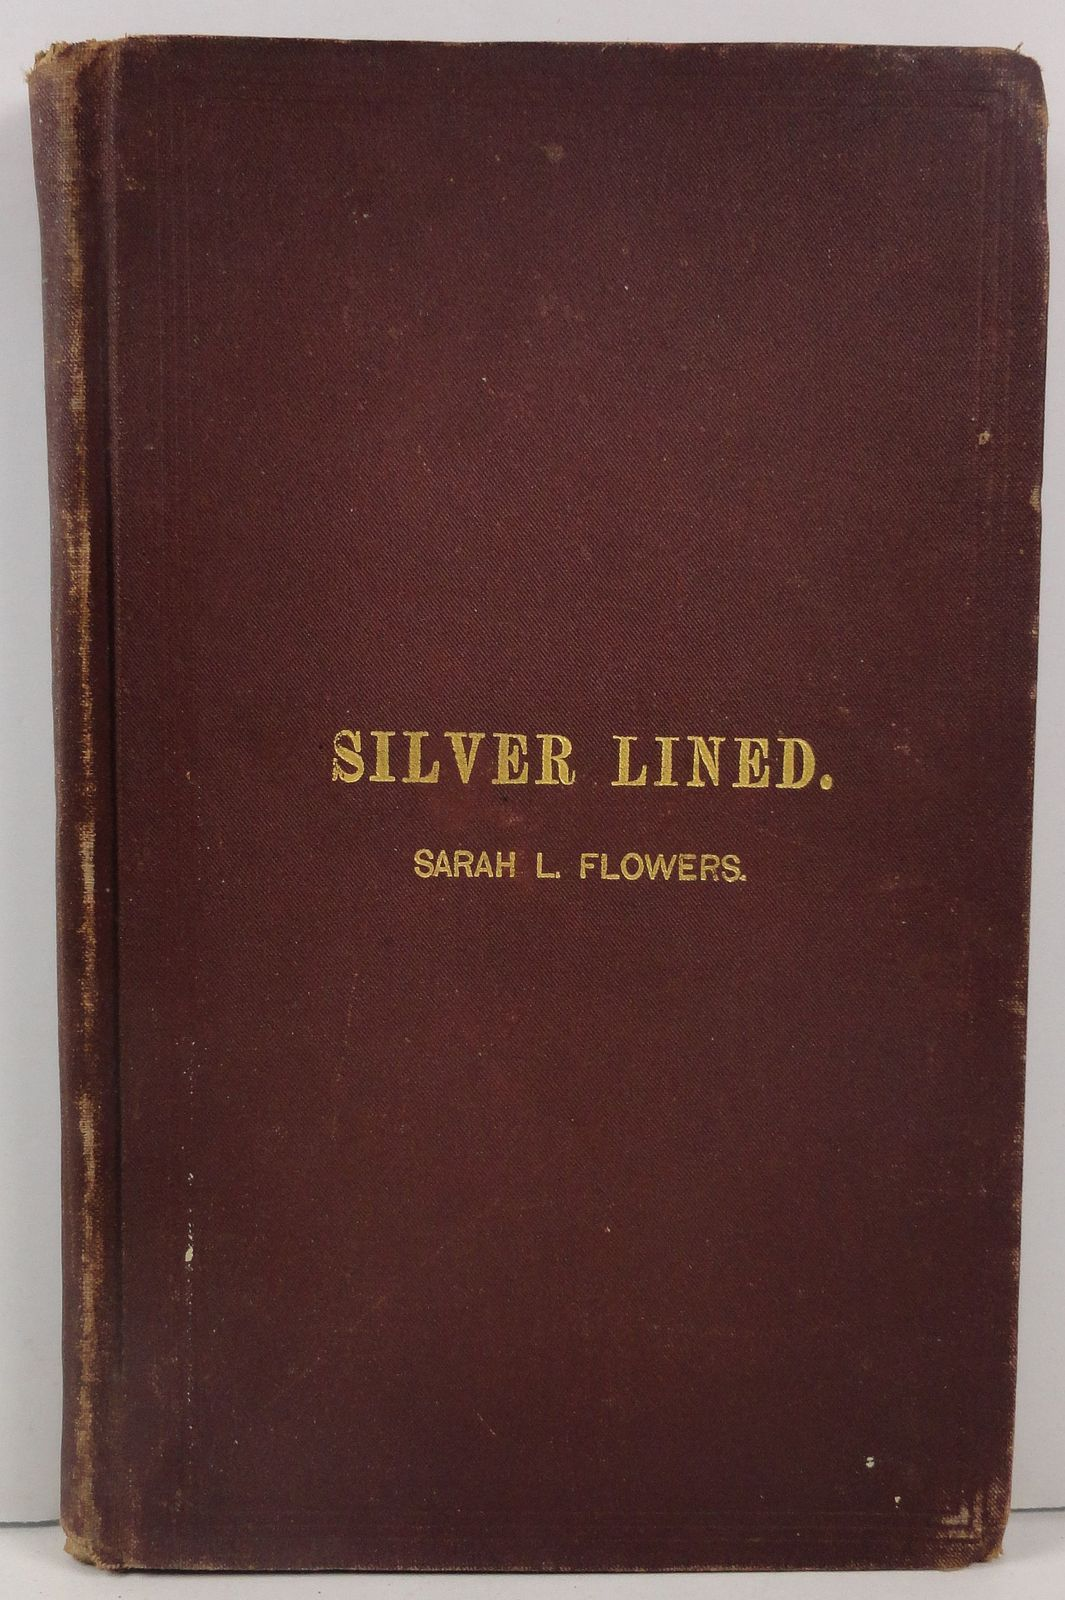 Silver Lined A Poem by Sarah L. Flowers 1878 W L Mershon